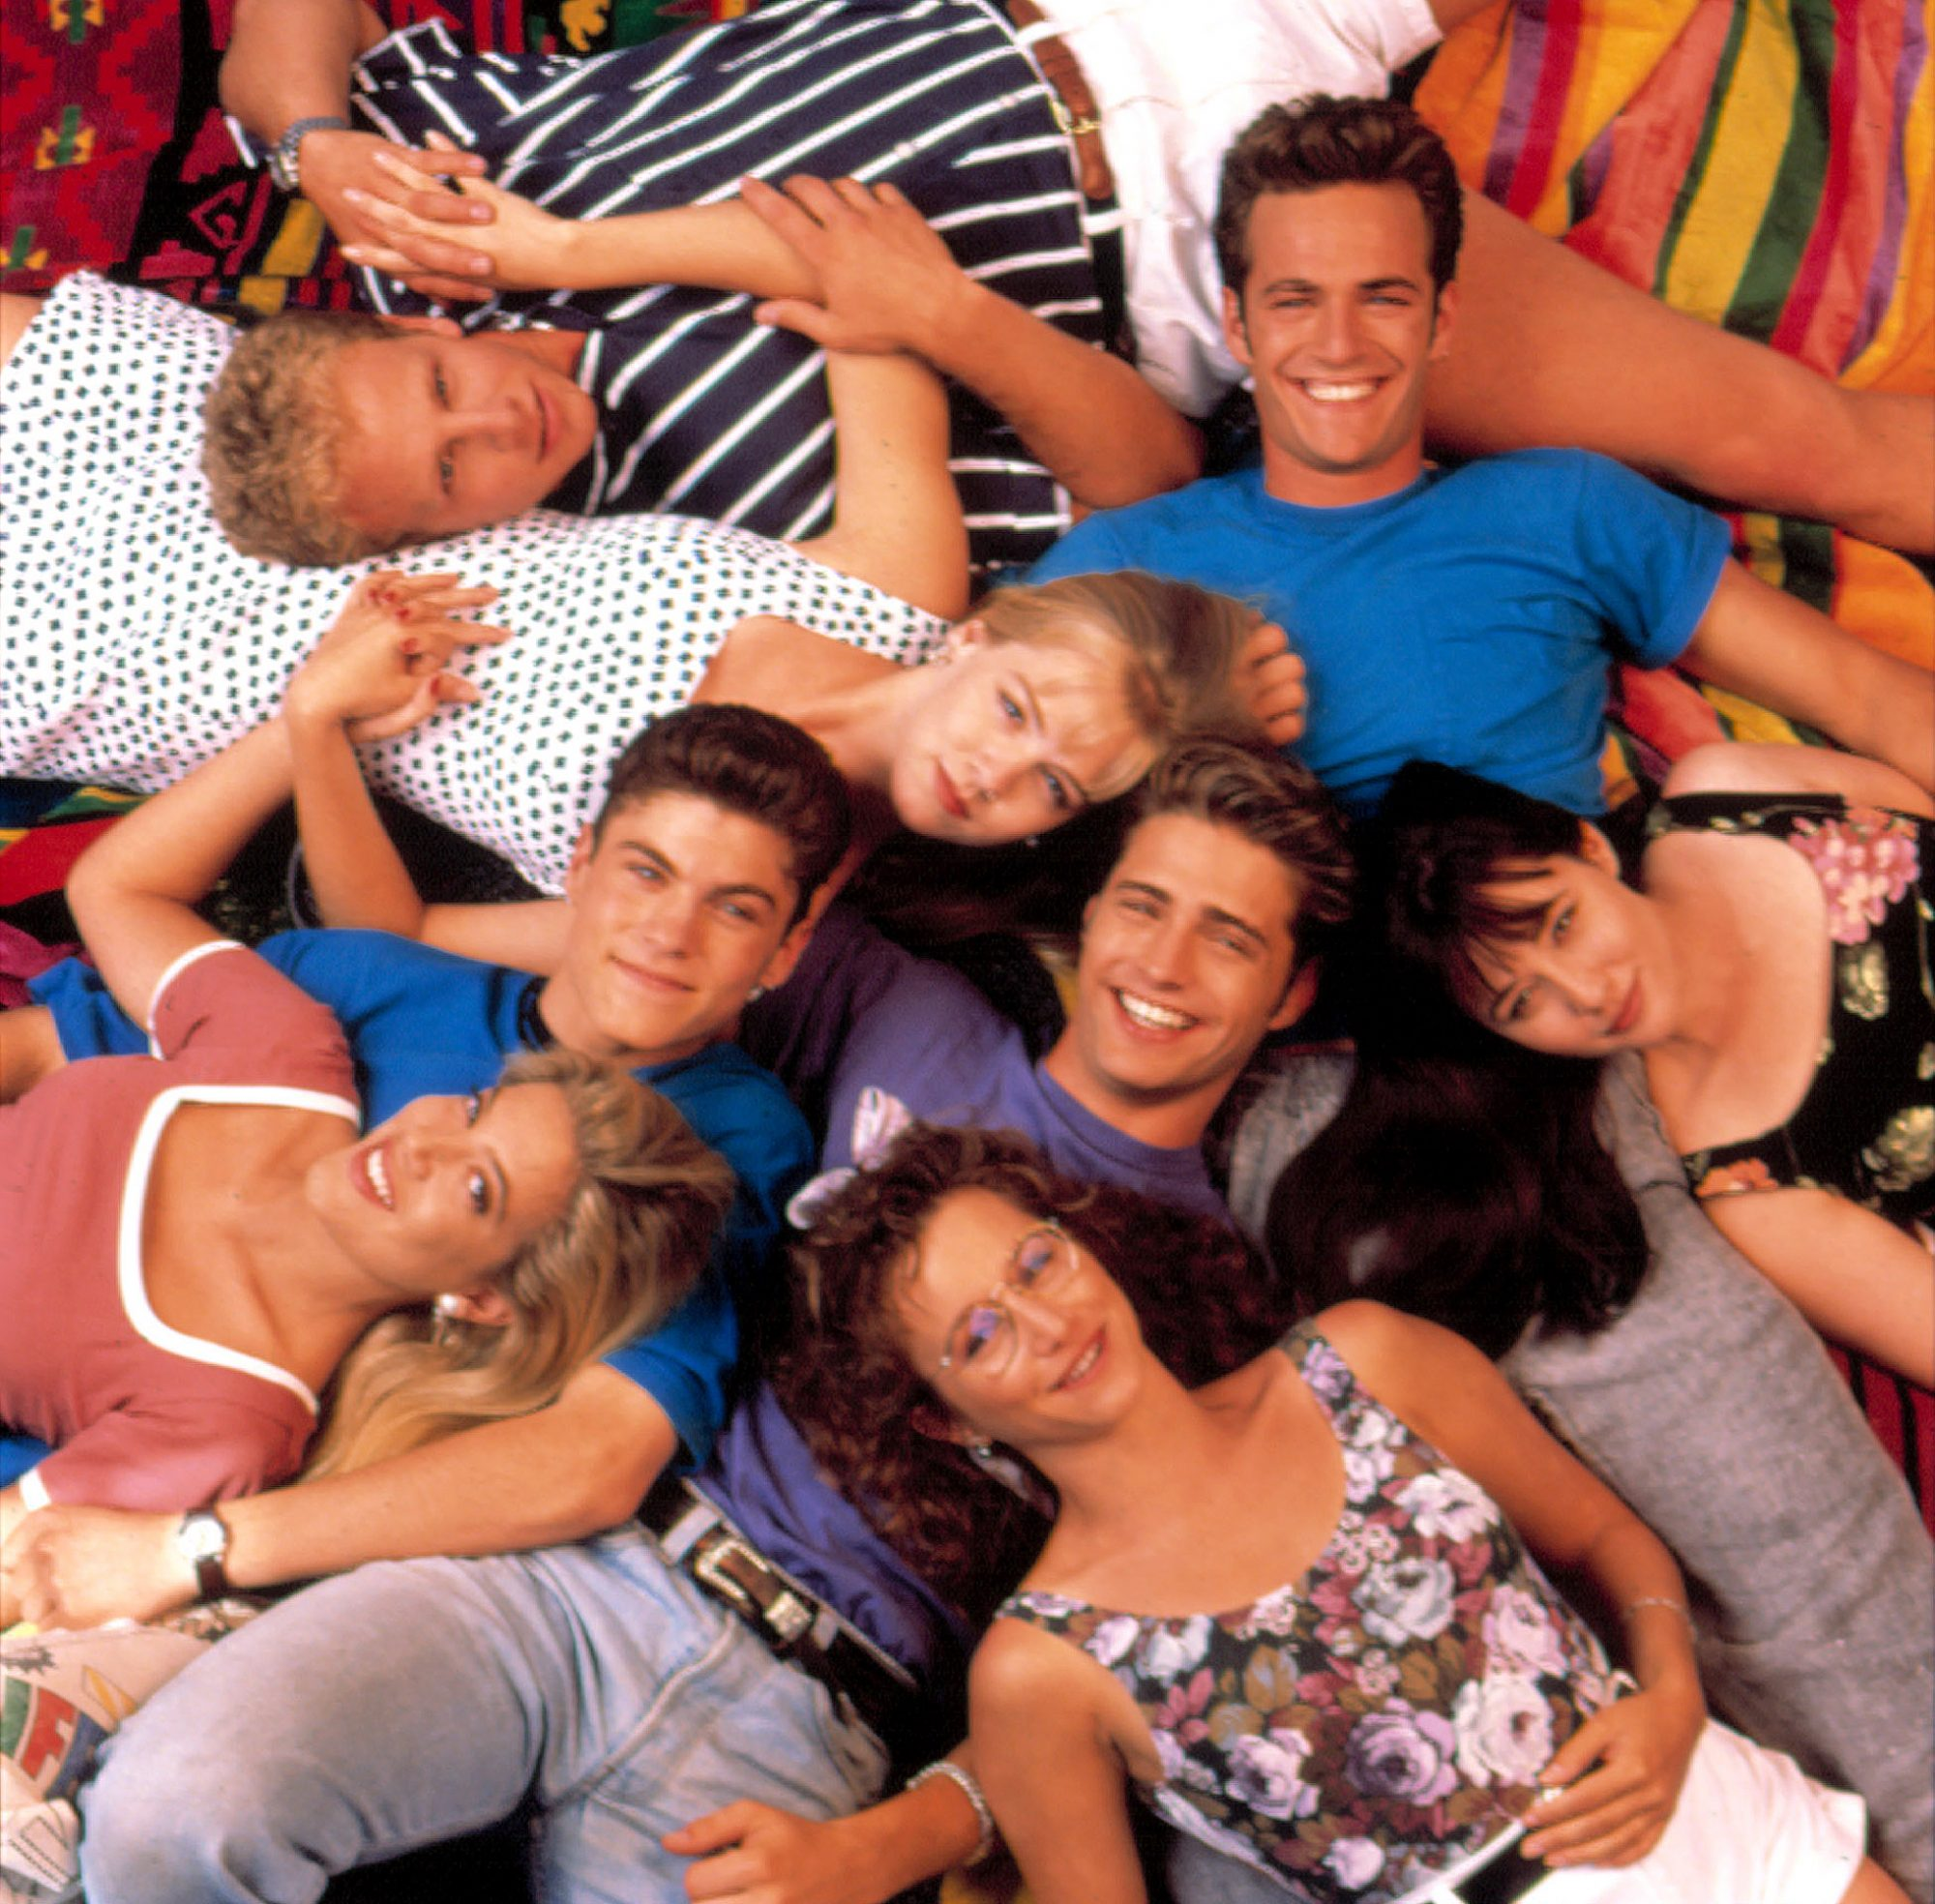 BEVERLY HILLS, 90210, cast portrait, 1990-2000